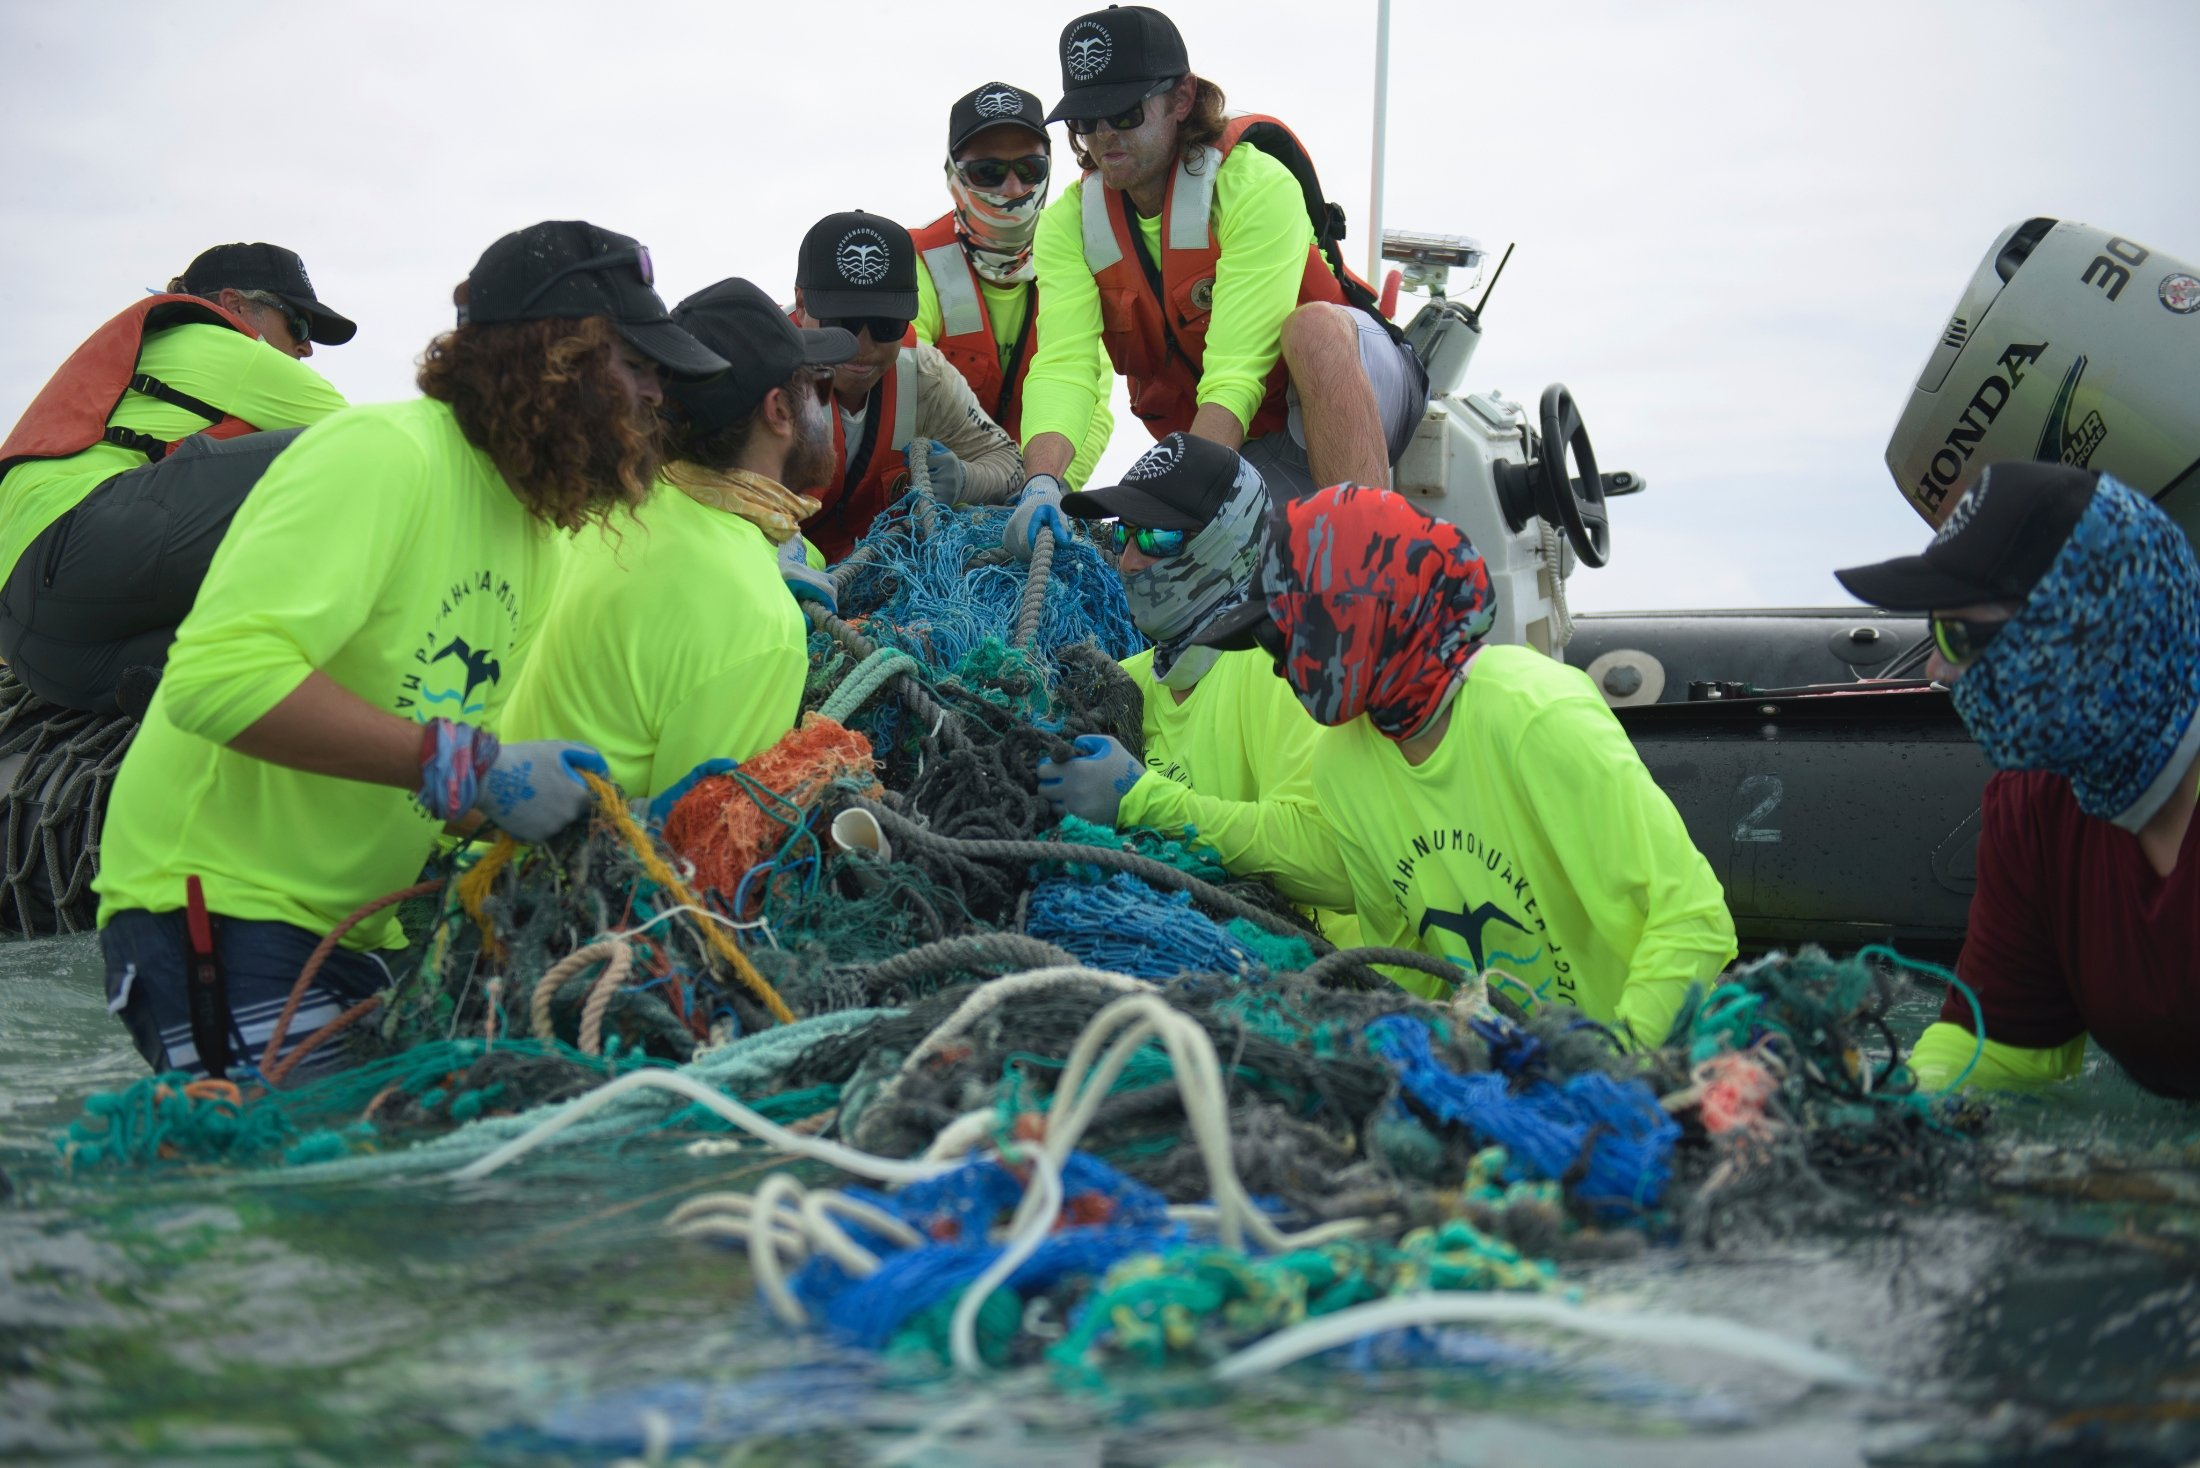 Workers with the Papahanaumokuakea Marine Debris Project load fishing nets onto a small boat on Midway Atoll in the Northwestern Hawaiian Islands, Hawaii, April 8, 2021. (Papahanaumokuakea Marine Debris Project via AP)